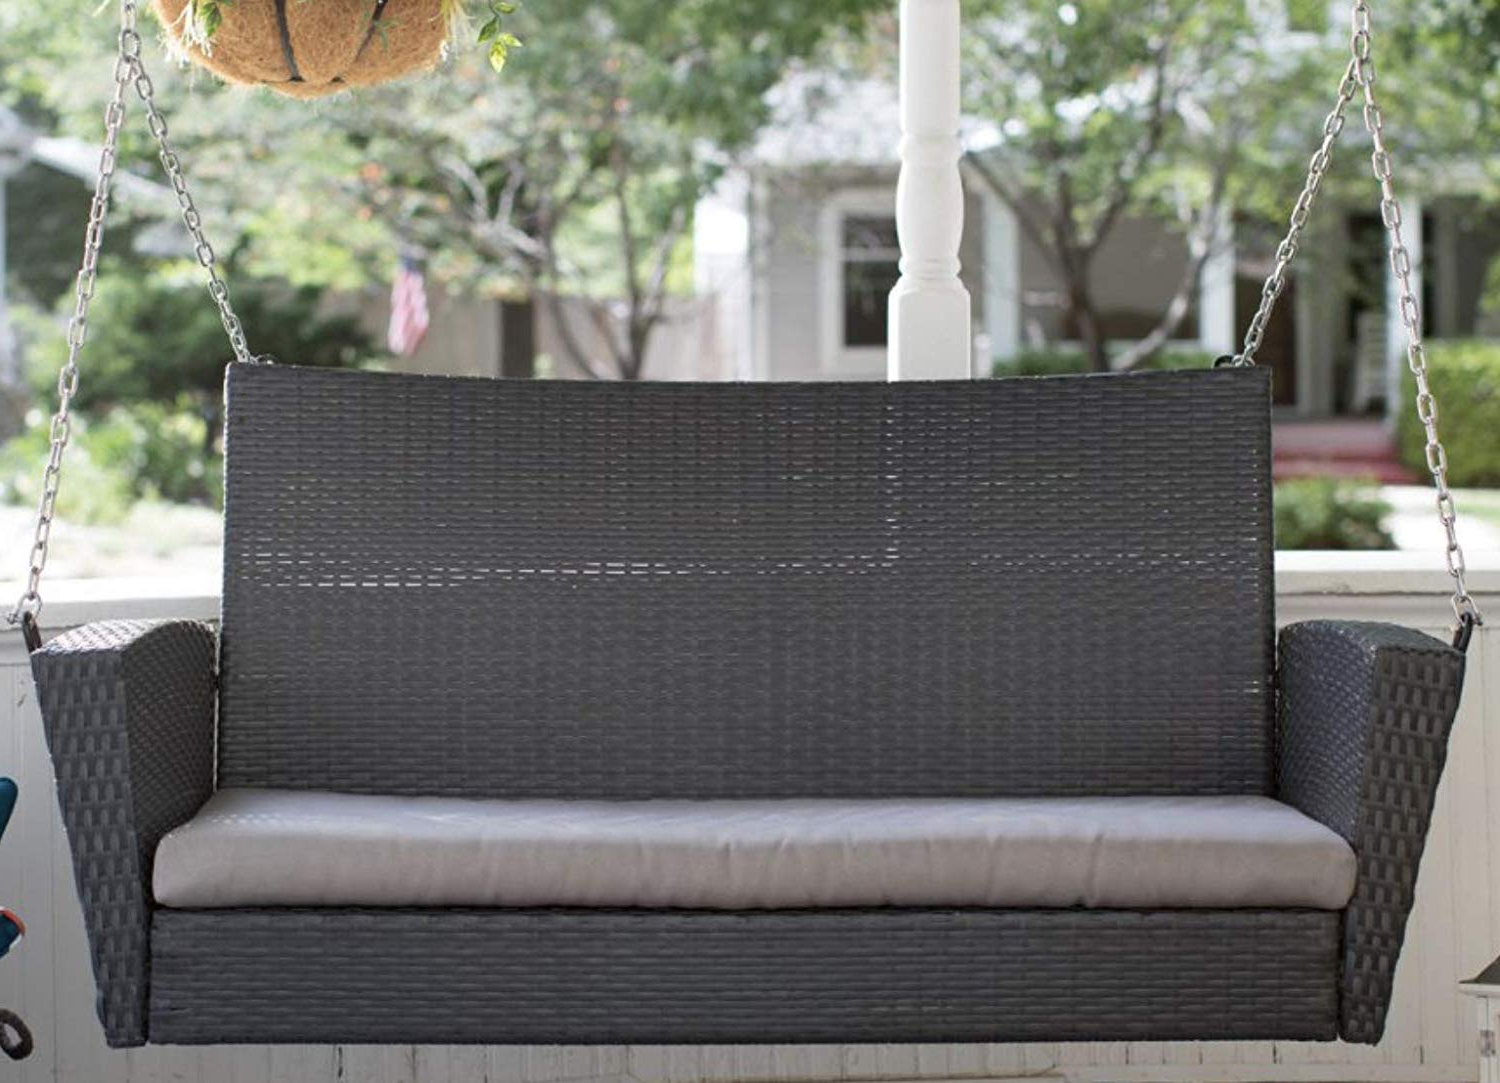 Widely Used Jeco W00205S C Fs011 Wicker Porch Swing Honey Porch Swings Intended For Porch Swings (Gallery 16 of 26)